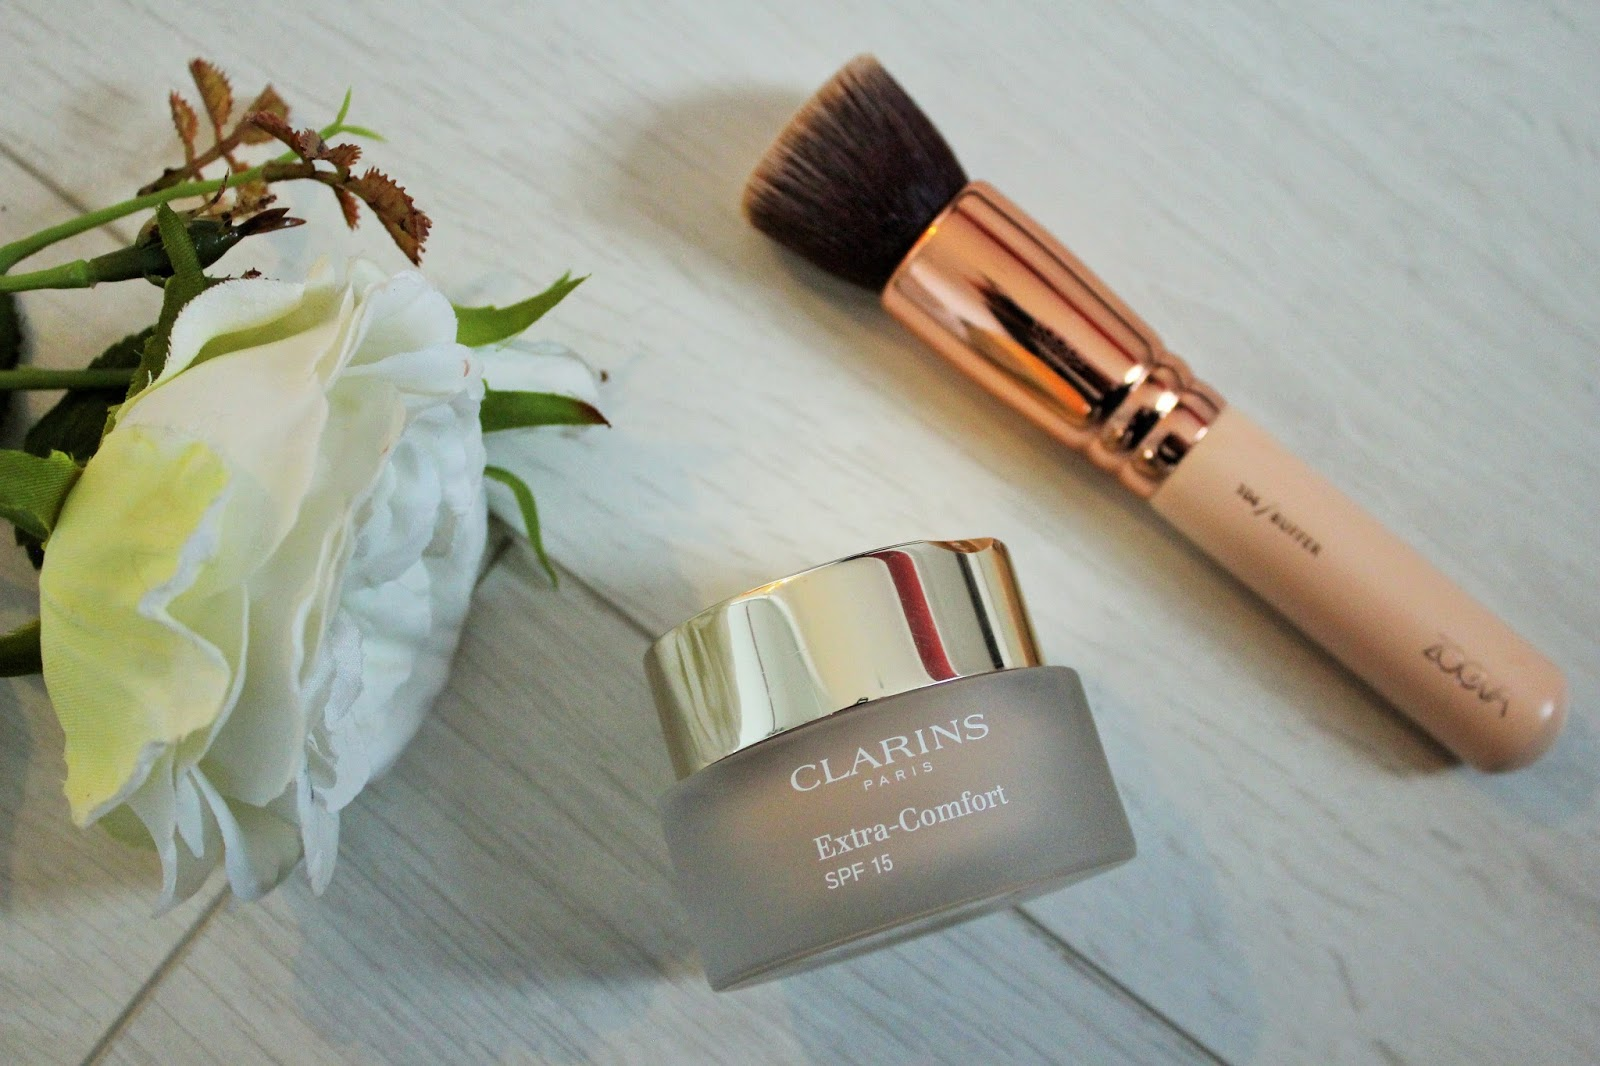 February Favourites 2017 - 6 - Clarins Extra Comfort Foundation and Zoeva Buffer Brush